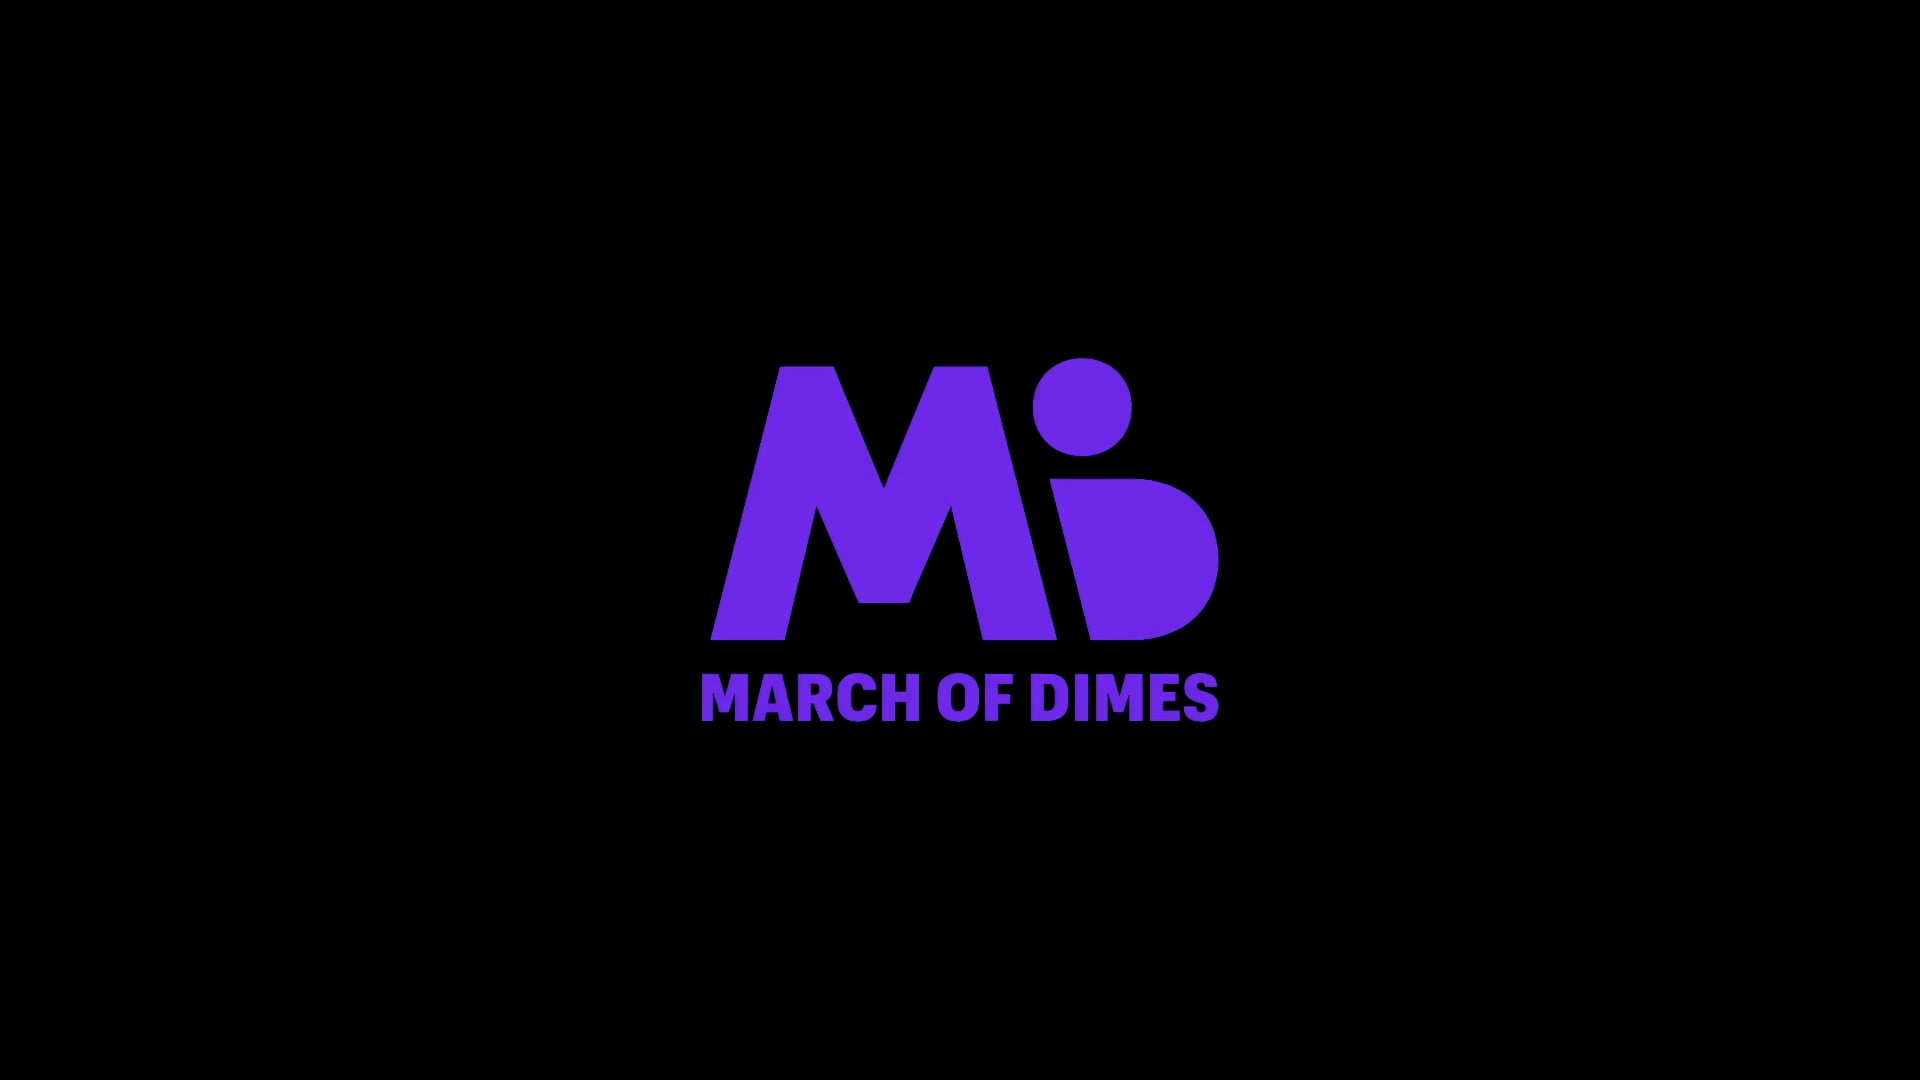 MARCH OF DIMES PROMO, 2018